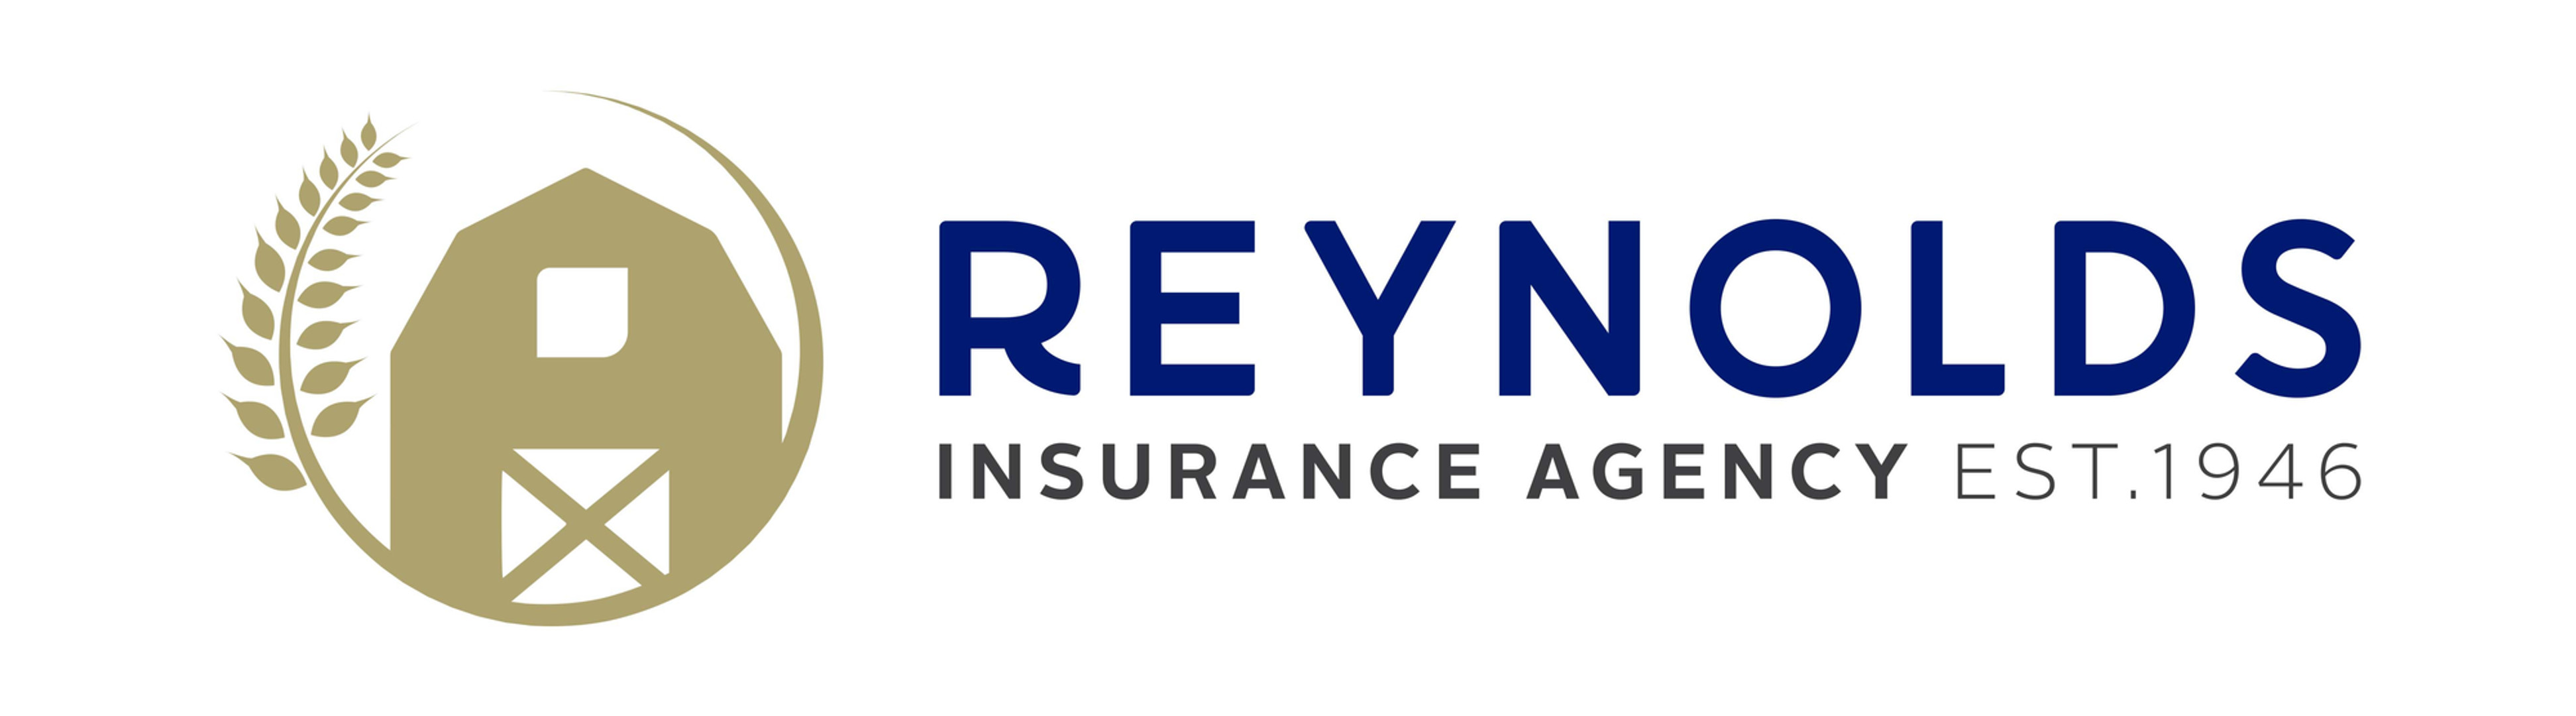 Reynolds Insurance Agency